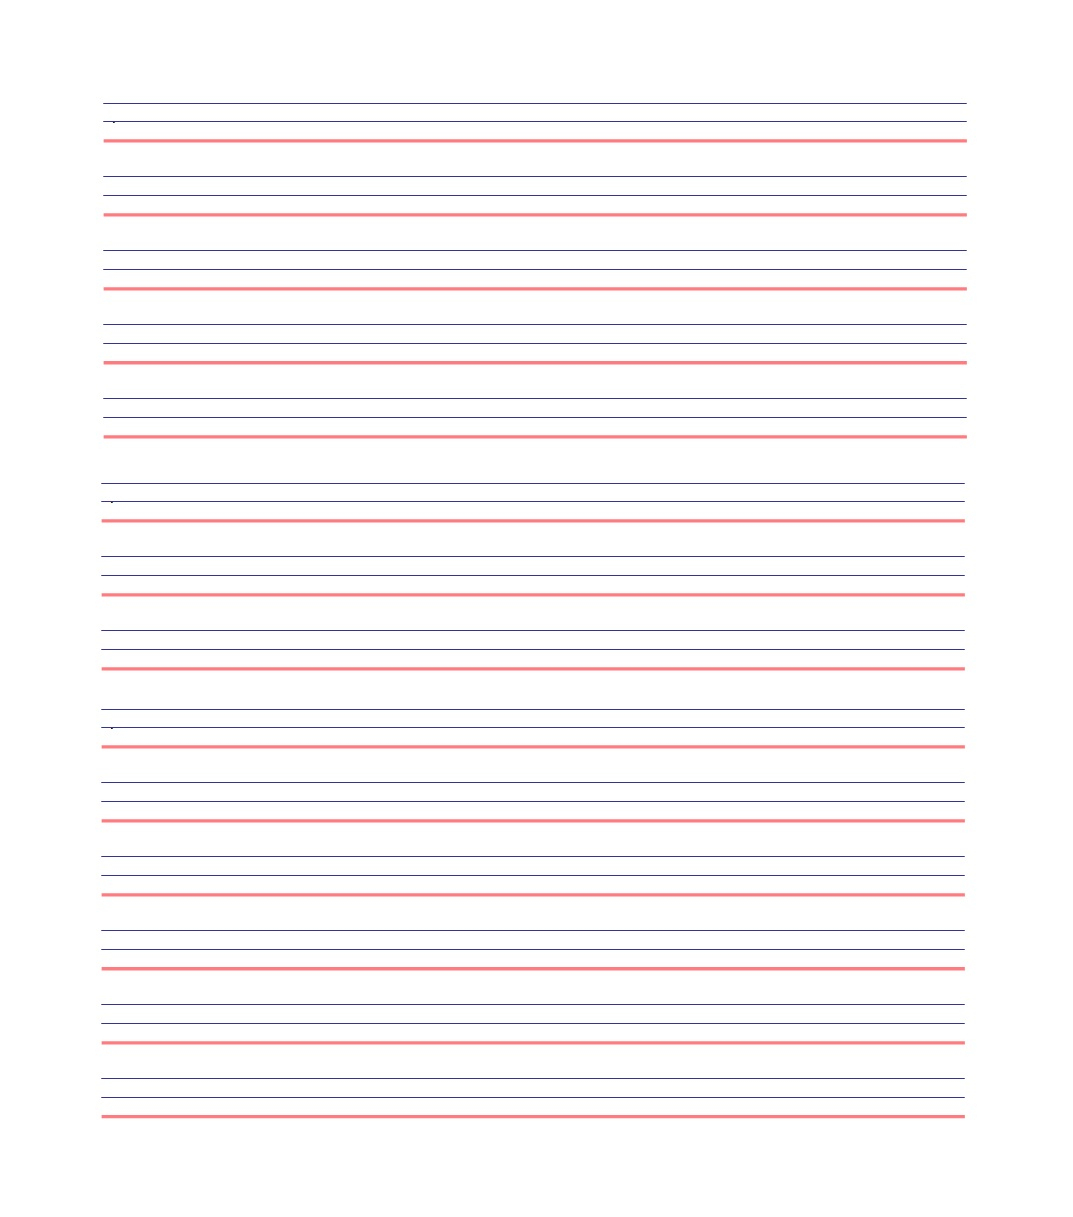 32 Printable Lined Paper Templates - Template Lab - Free Printable Lined Paper